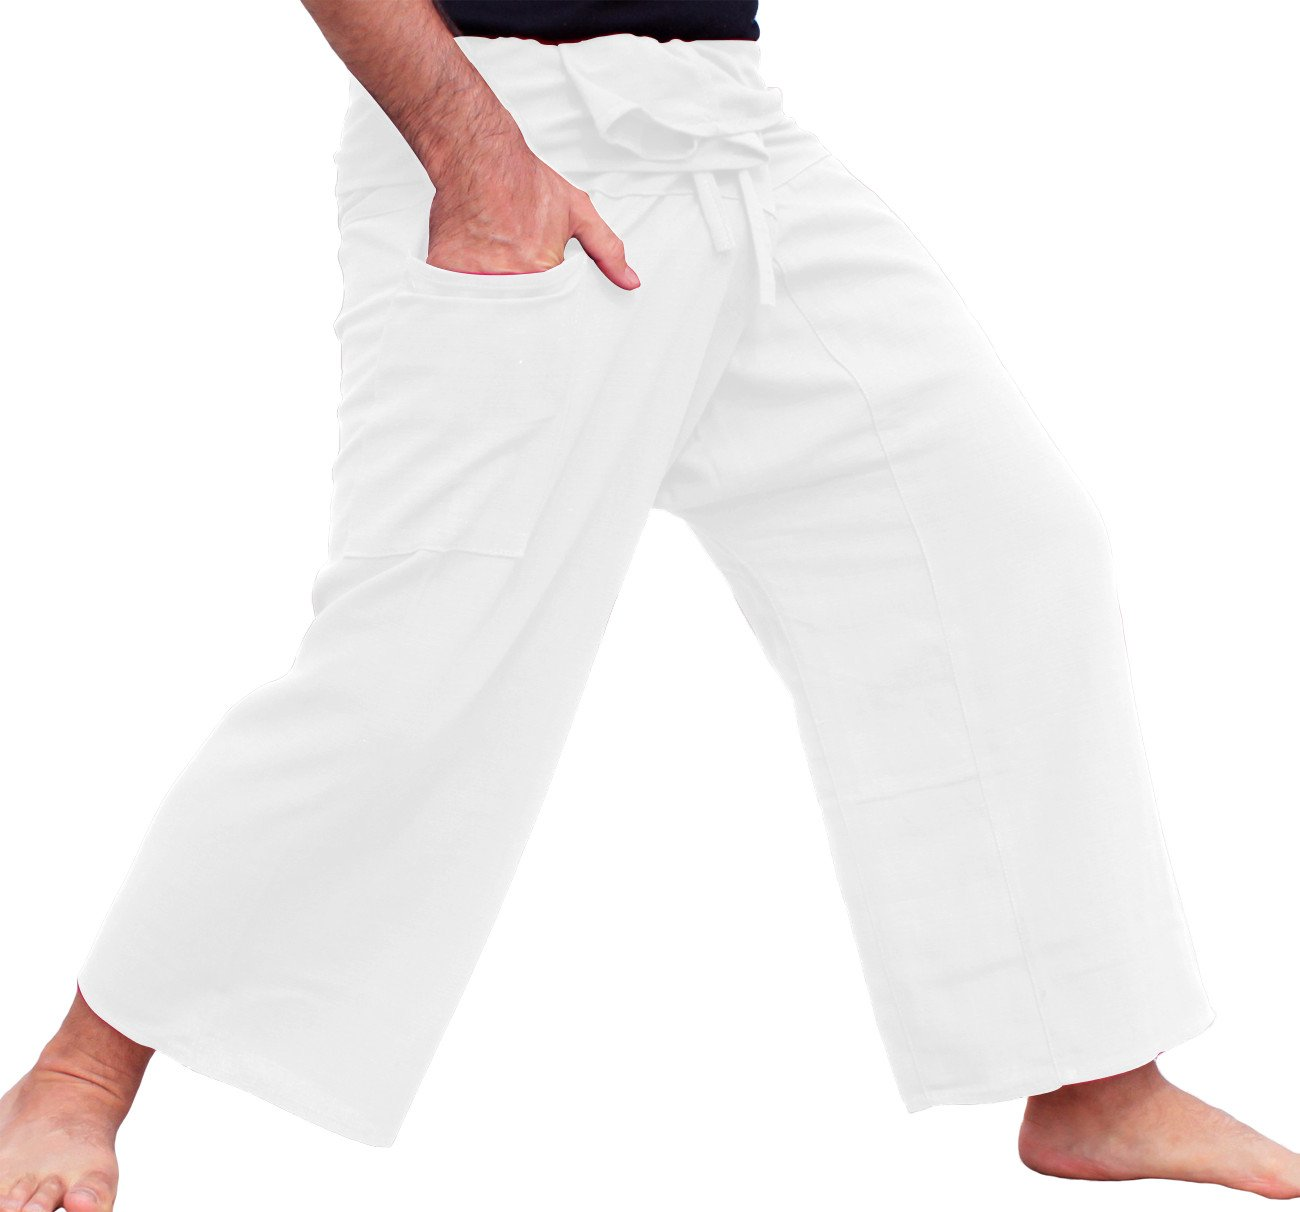 Raan Pah Muang Brand Plain Thick Line Cotton Thai Fisherman Wrap Tall Length Pants, X-Large, White by Raan Pah Muang